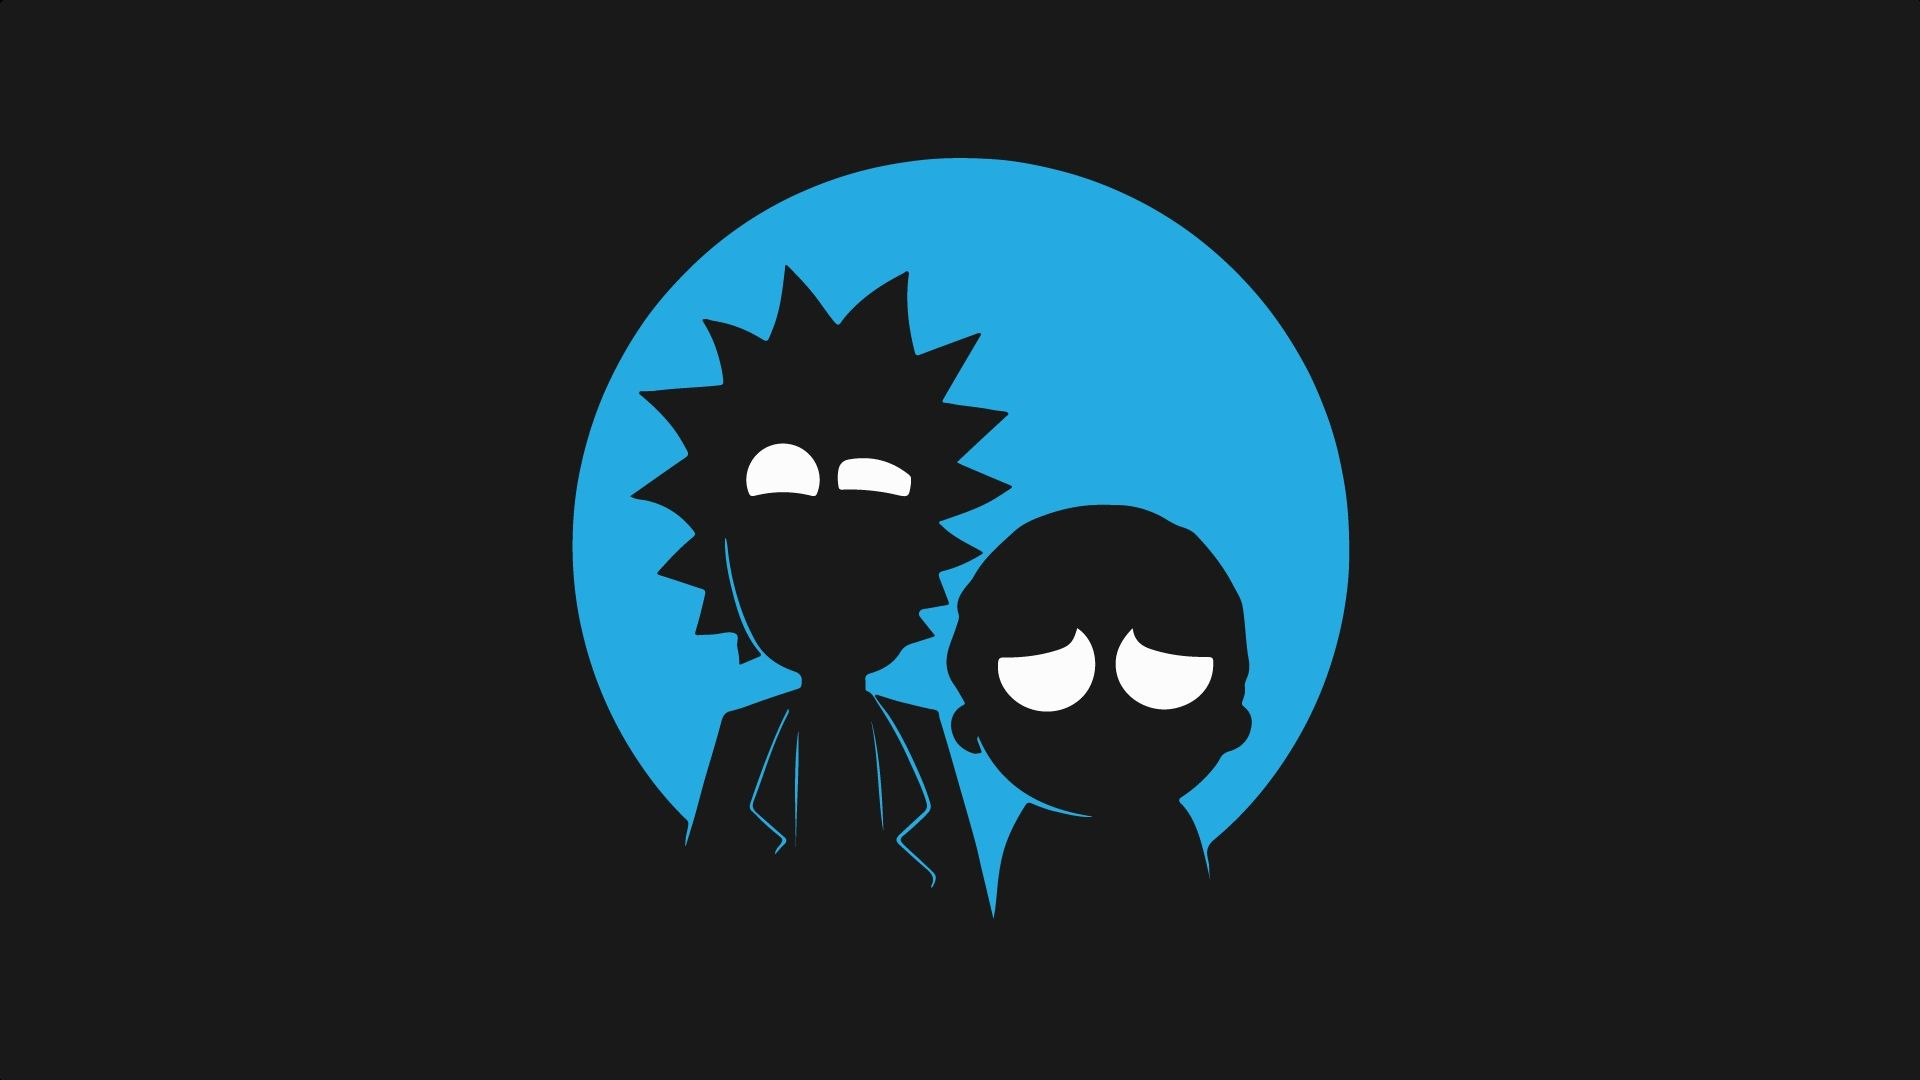 Rick And Morty Pc Wallpapers Album On Imgur Regarding The Rick And Morty Wallpaper Windows 10 Di 2020